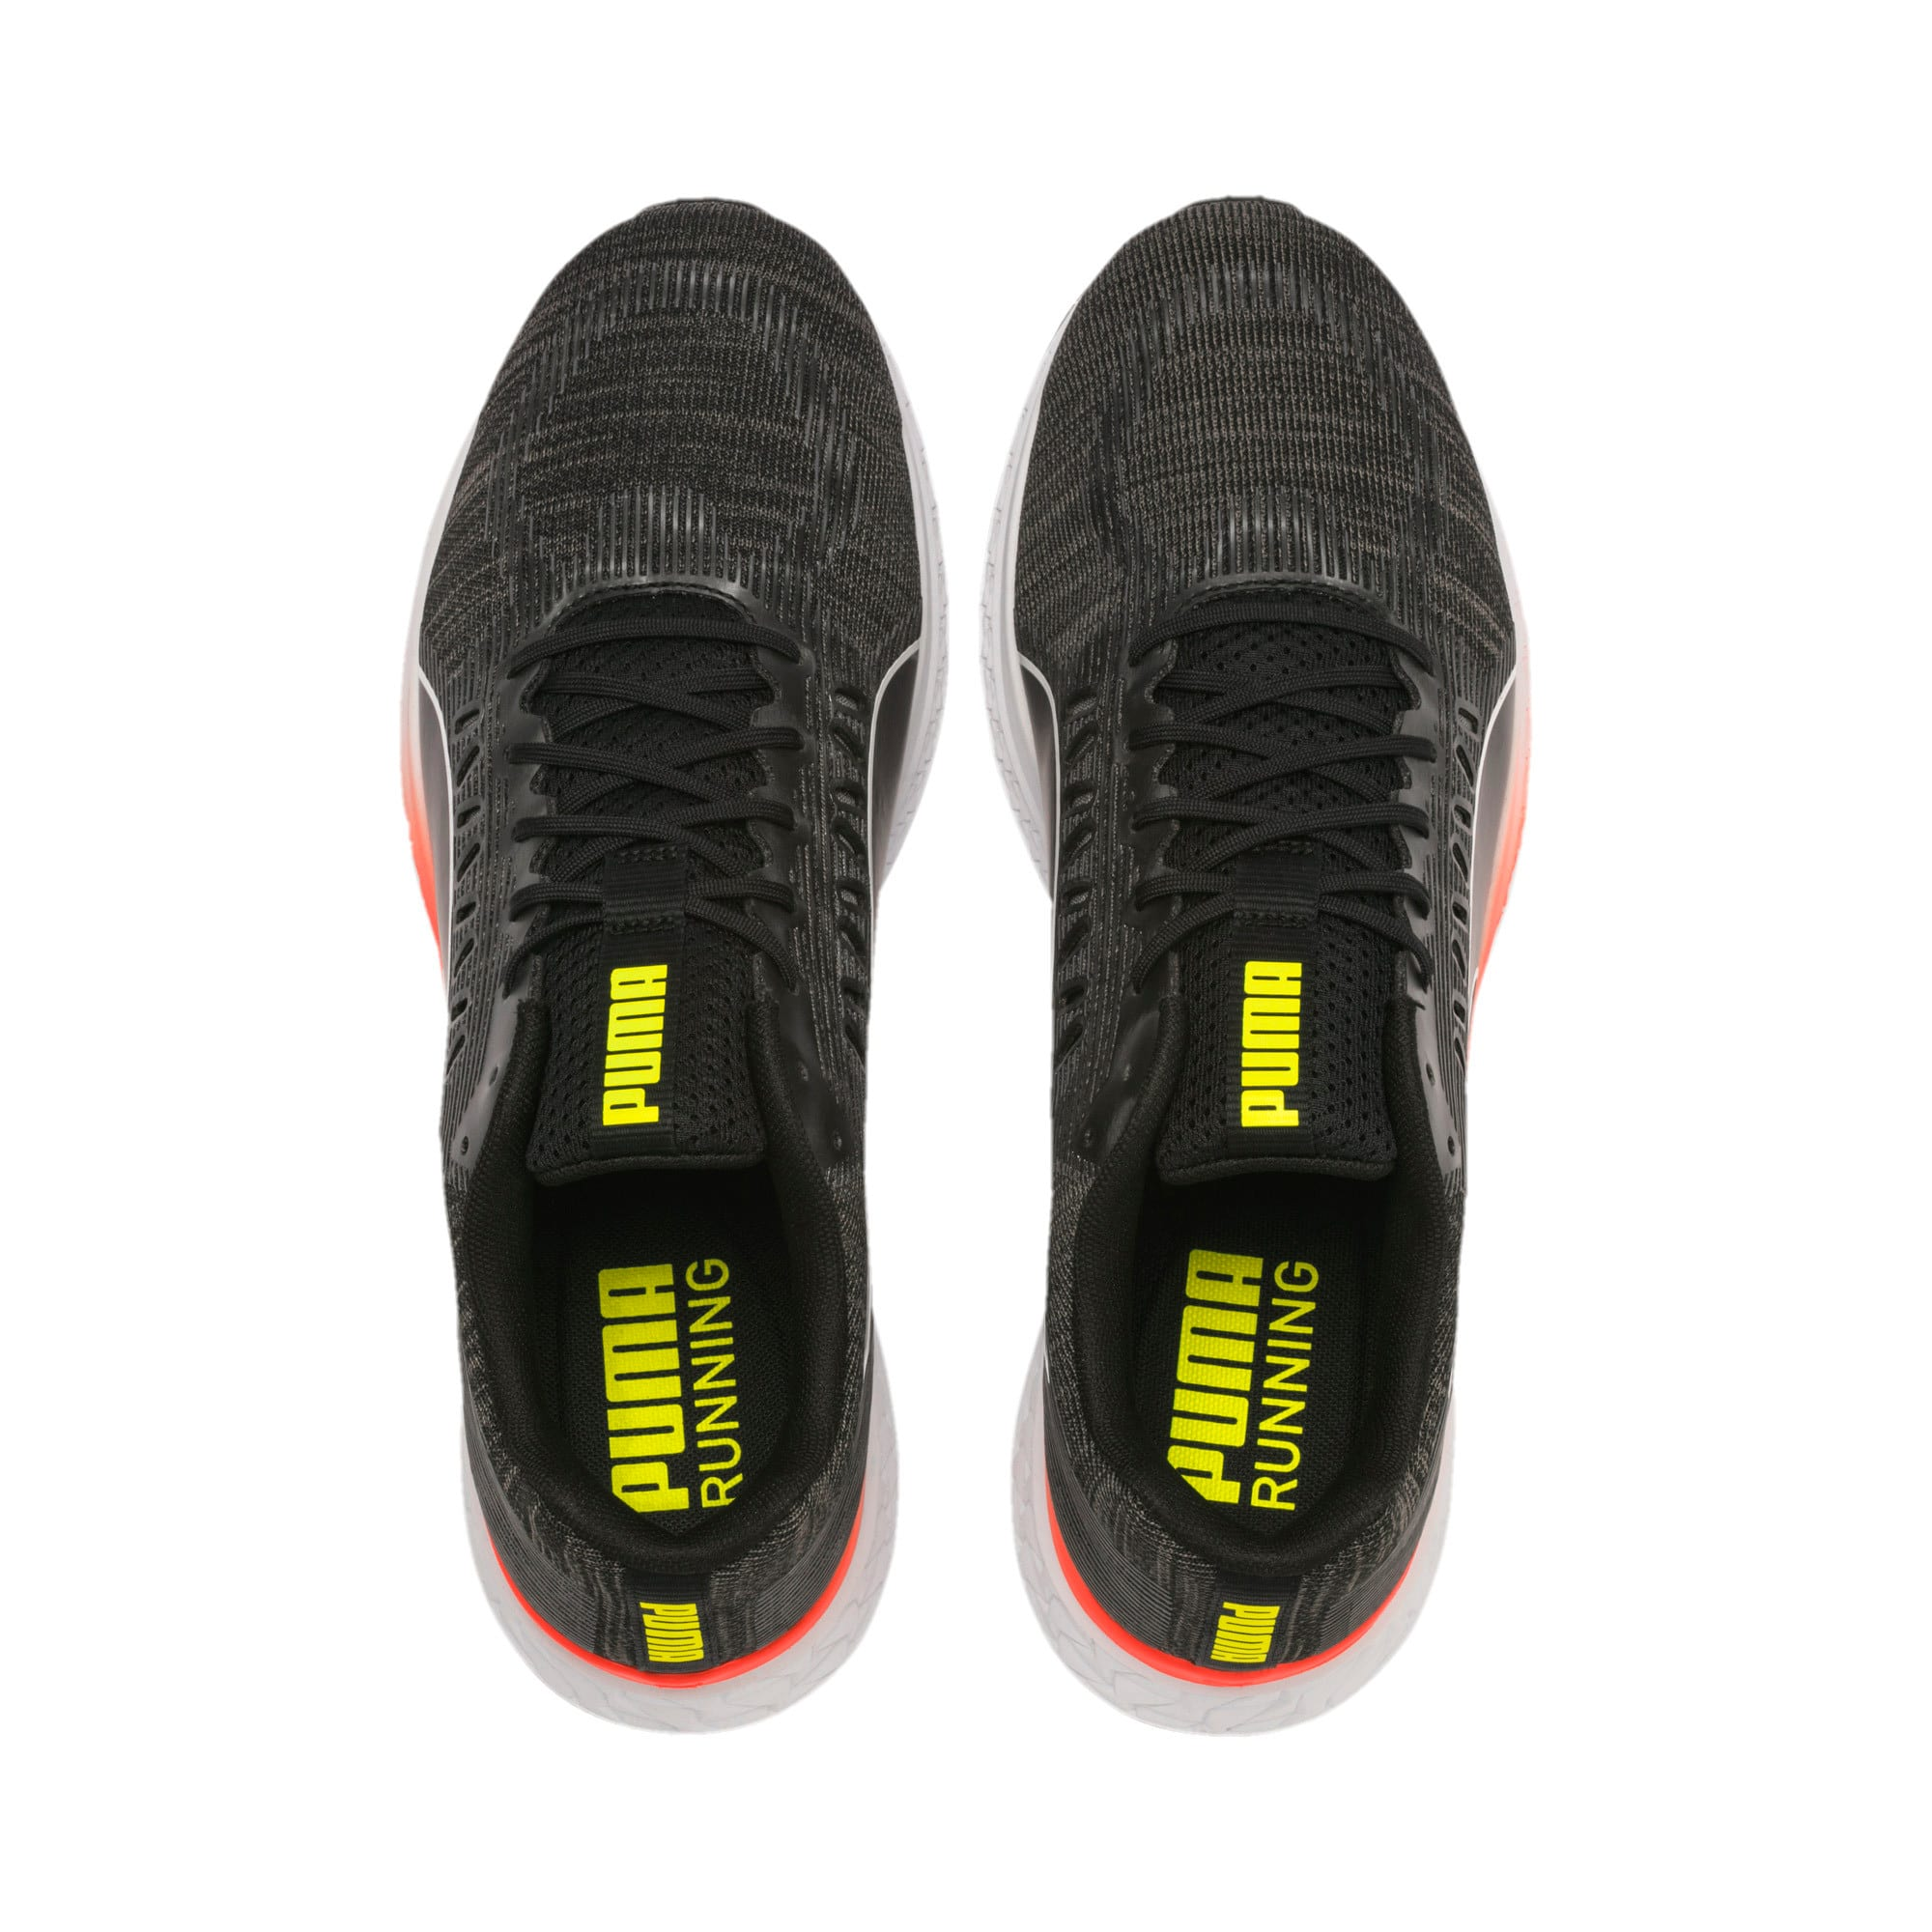 Thumbnail 7 of SPEED SUTAMINA Running Shoes, Black-CASTLEROCK-Yellow-Red, medium